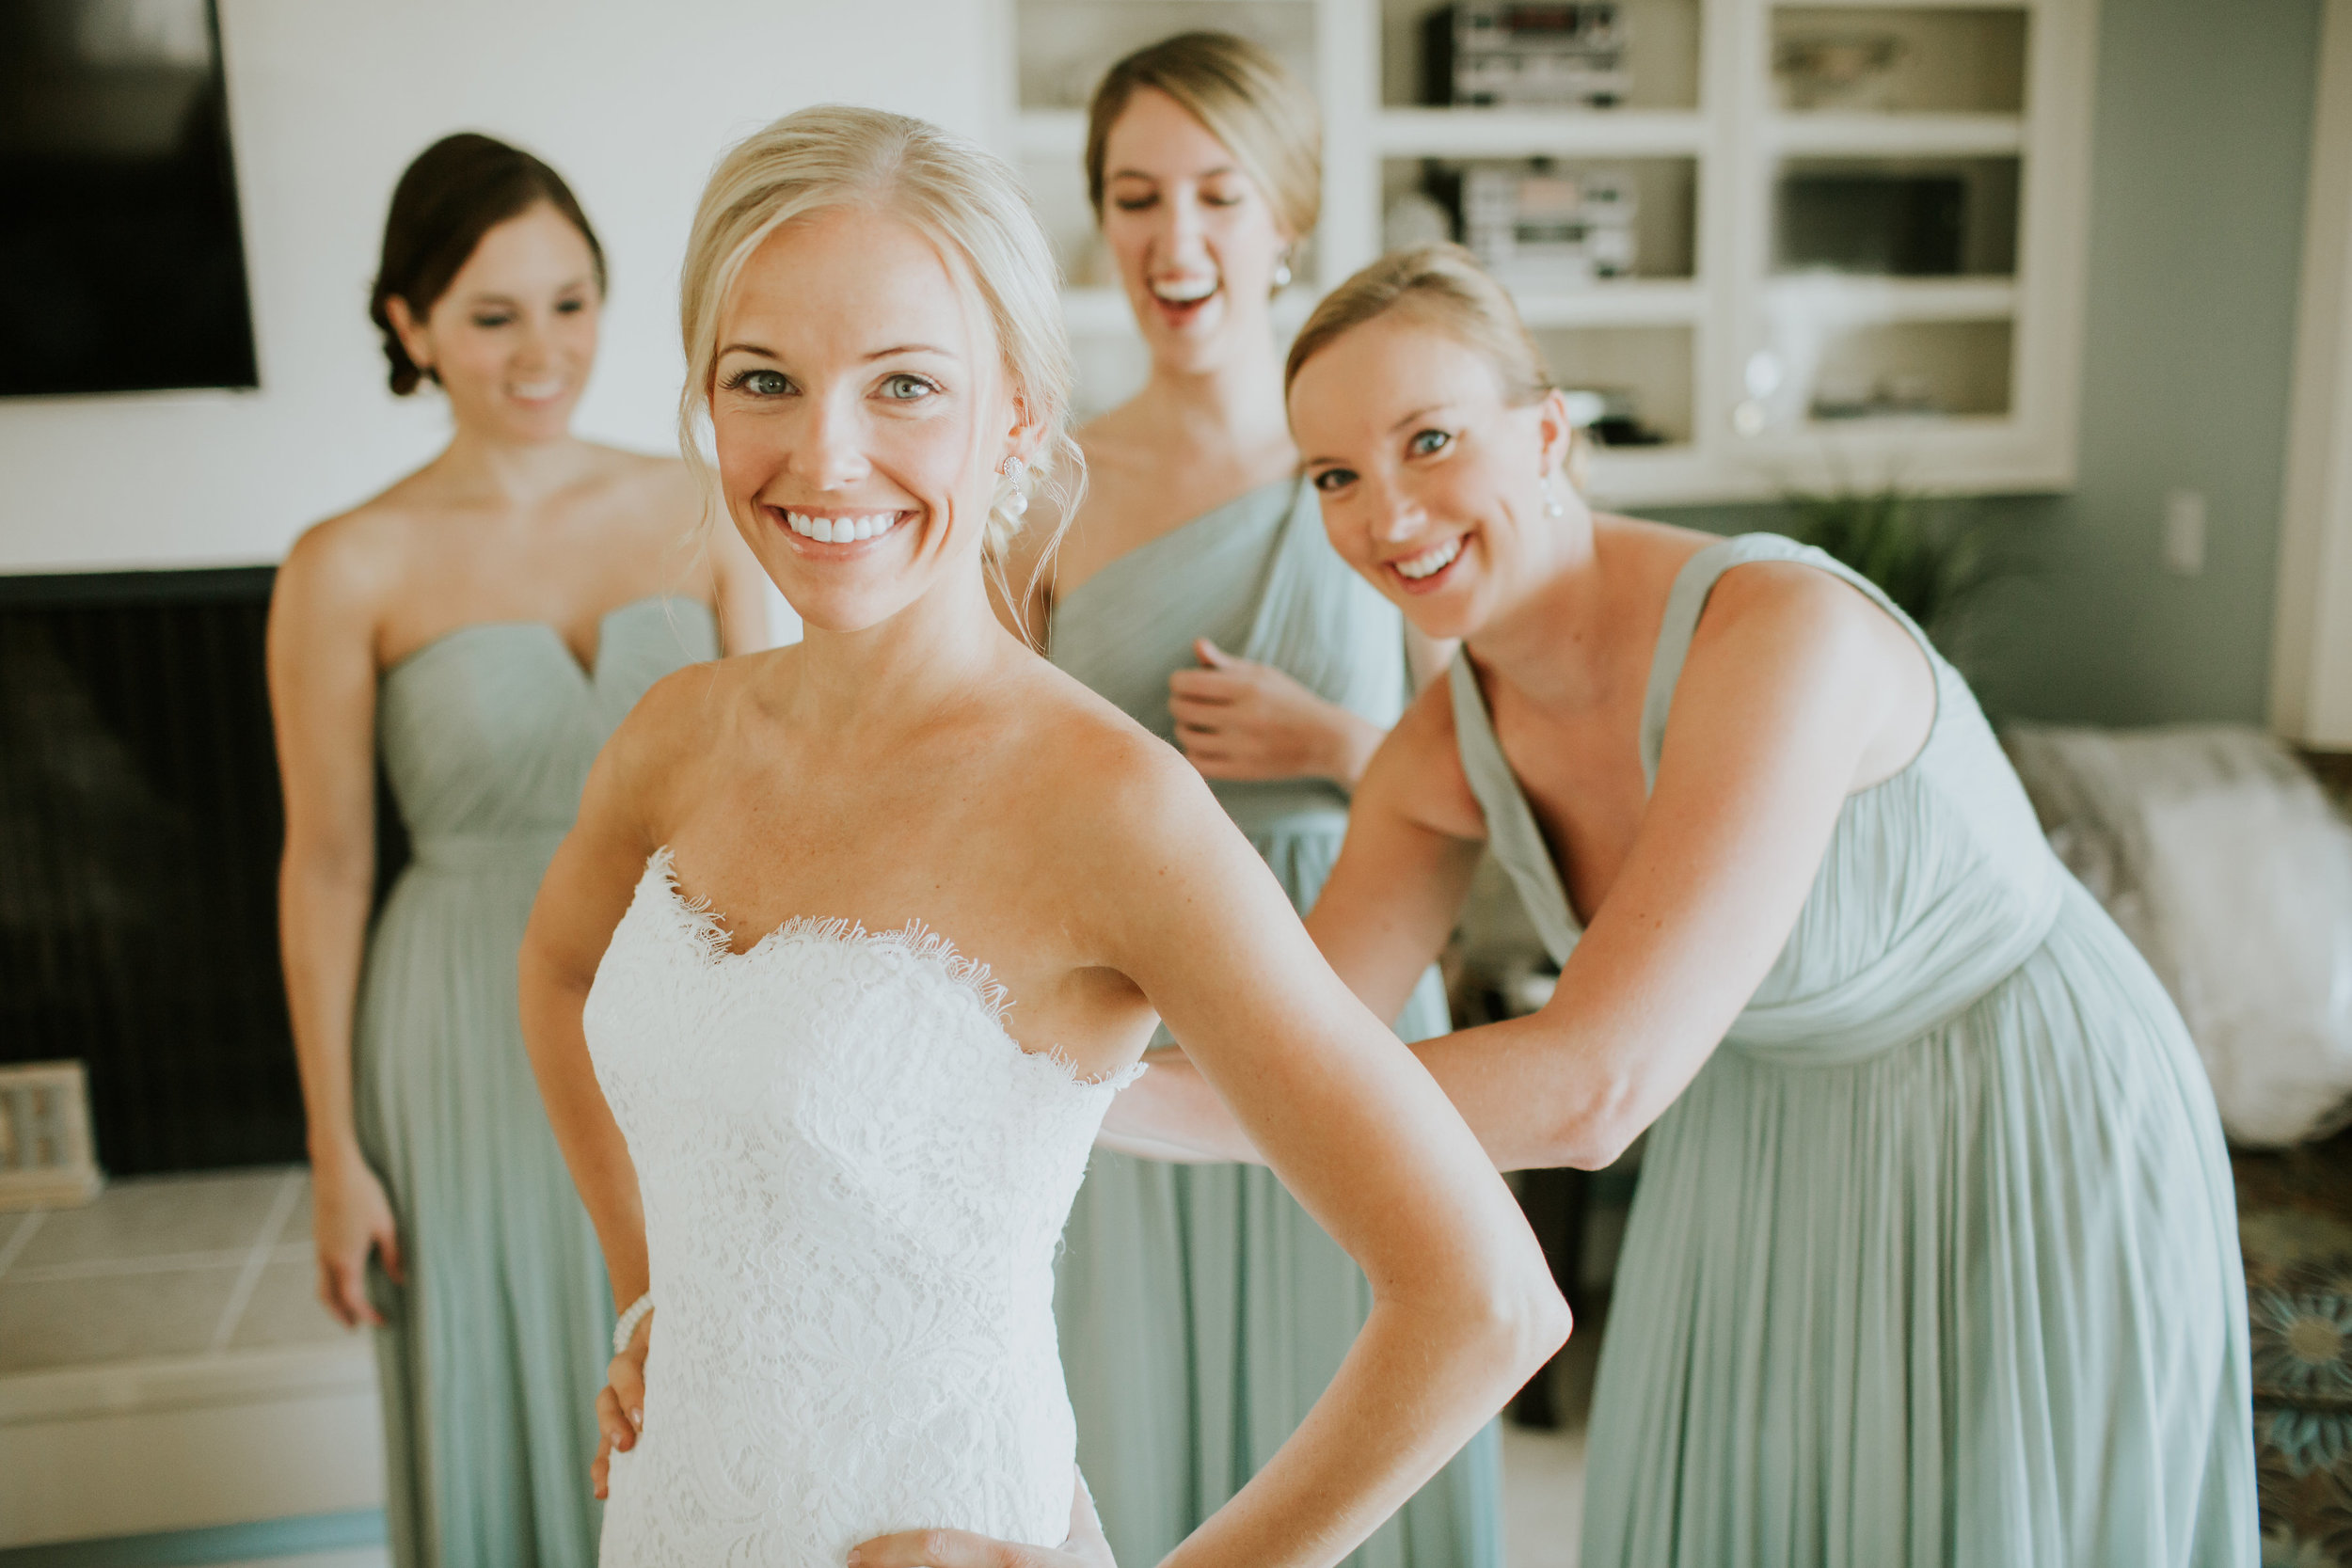 Bride stepping into her Theia lace wedding dress  //  Hilton Head SC wedding photography by Carrie Friesen